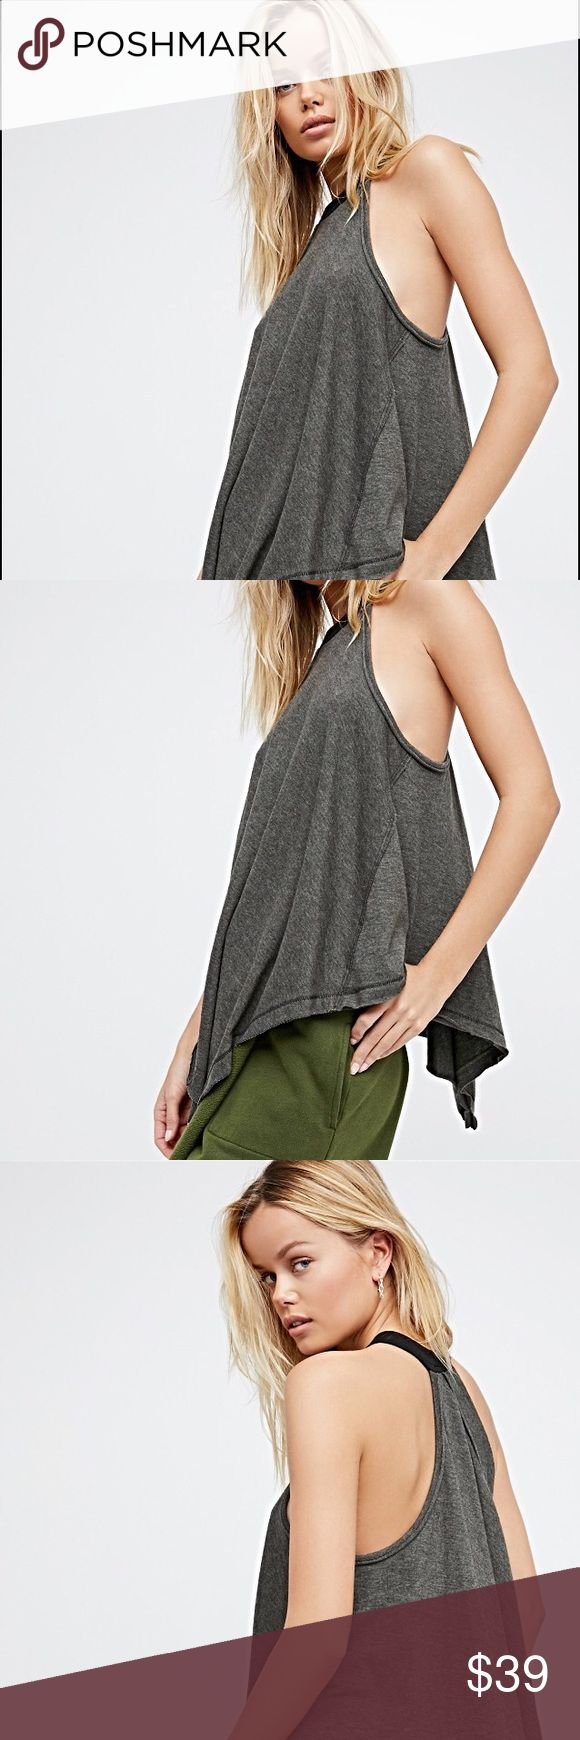 Twin Peeks Tank🍃 Relaxed racerback tank featuring an easy, swingy shape with an asymmetrical hem.  • Unfinished edges for a lived-in look • Contrast ribbed neckline detail   *By We The Free *50% Cotton, 50% Polyester *Machine Wash Cold *Import  Measurements for size: Extra Small *Bust: 36.0 = 91.4 *Length: 26.5 = 67.3. Army color Free People Tops Tank Tops